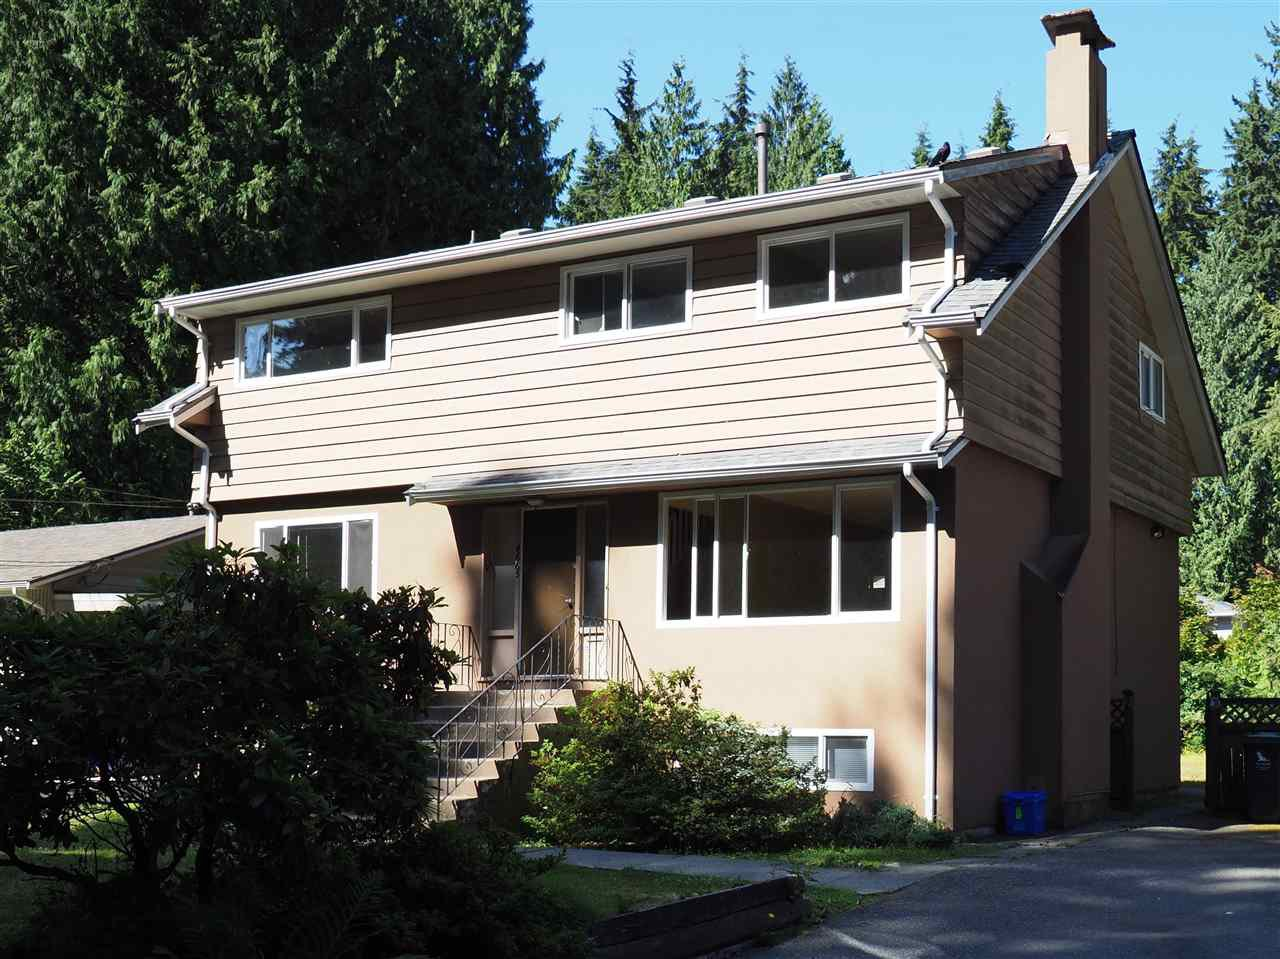 Main Photo: 4665 UNDERWOOD Avenue in North Vancouver: Lynn Valley House for sale : MLS®# R2193504